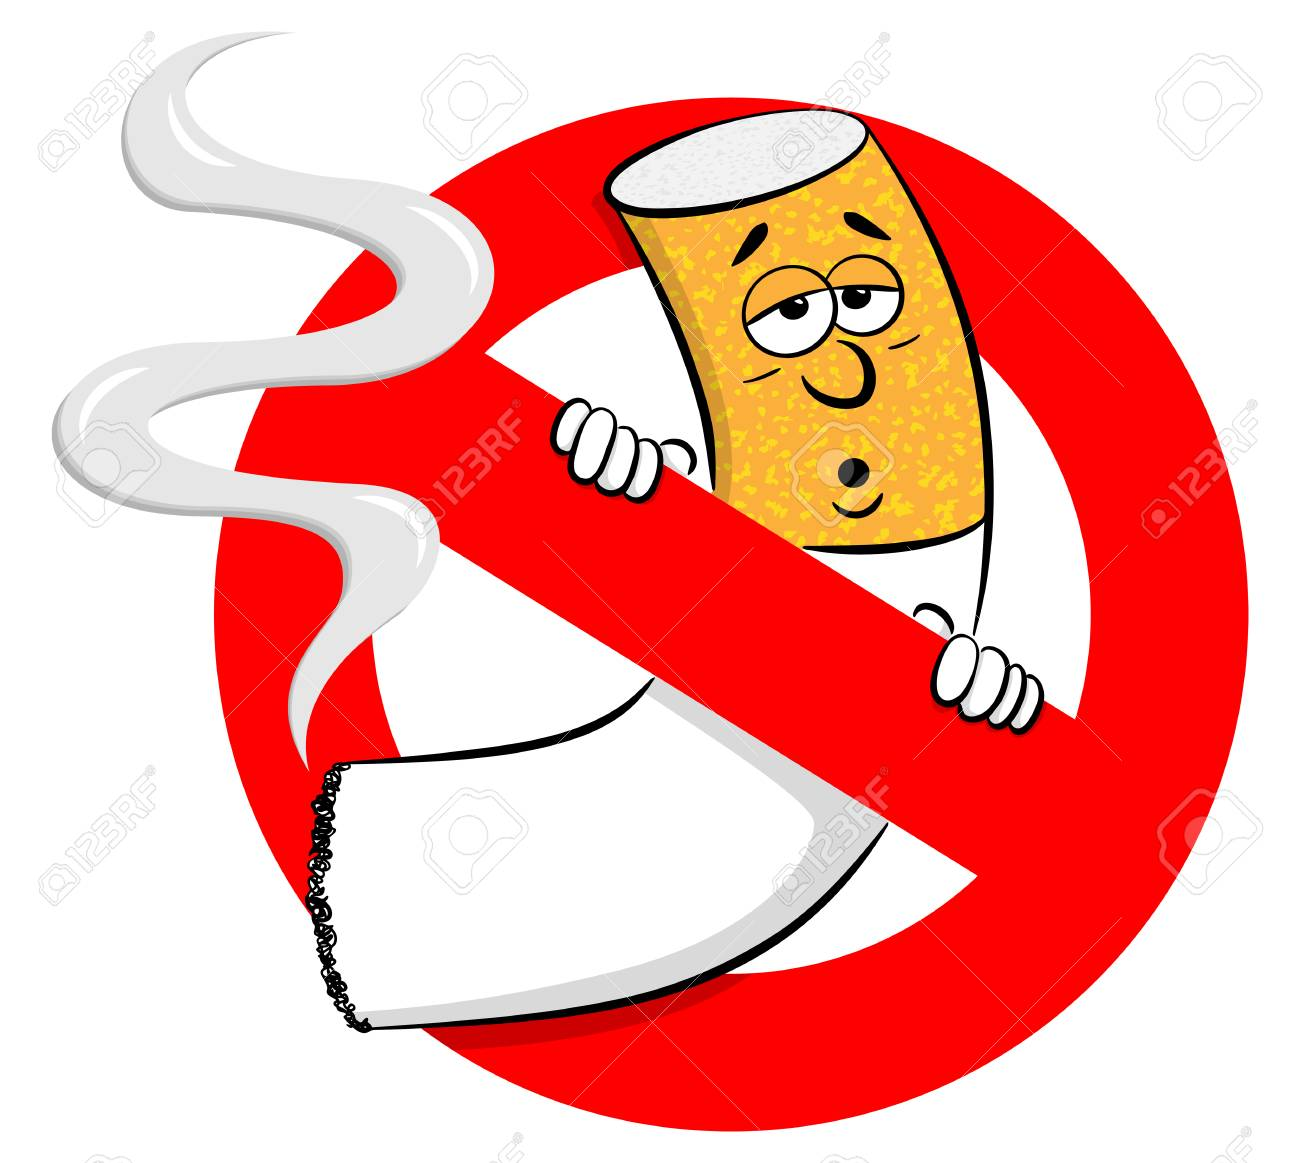 Vector Illustration Of A No Smoking Sign With Cartoon Cigarette Royalty Free Cliparts Vectors And Stock Illustration Image 124670319